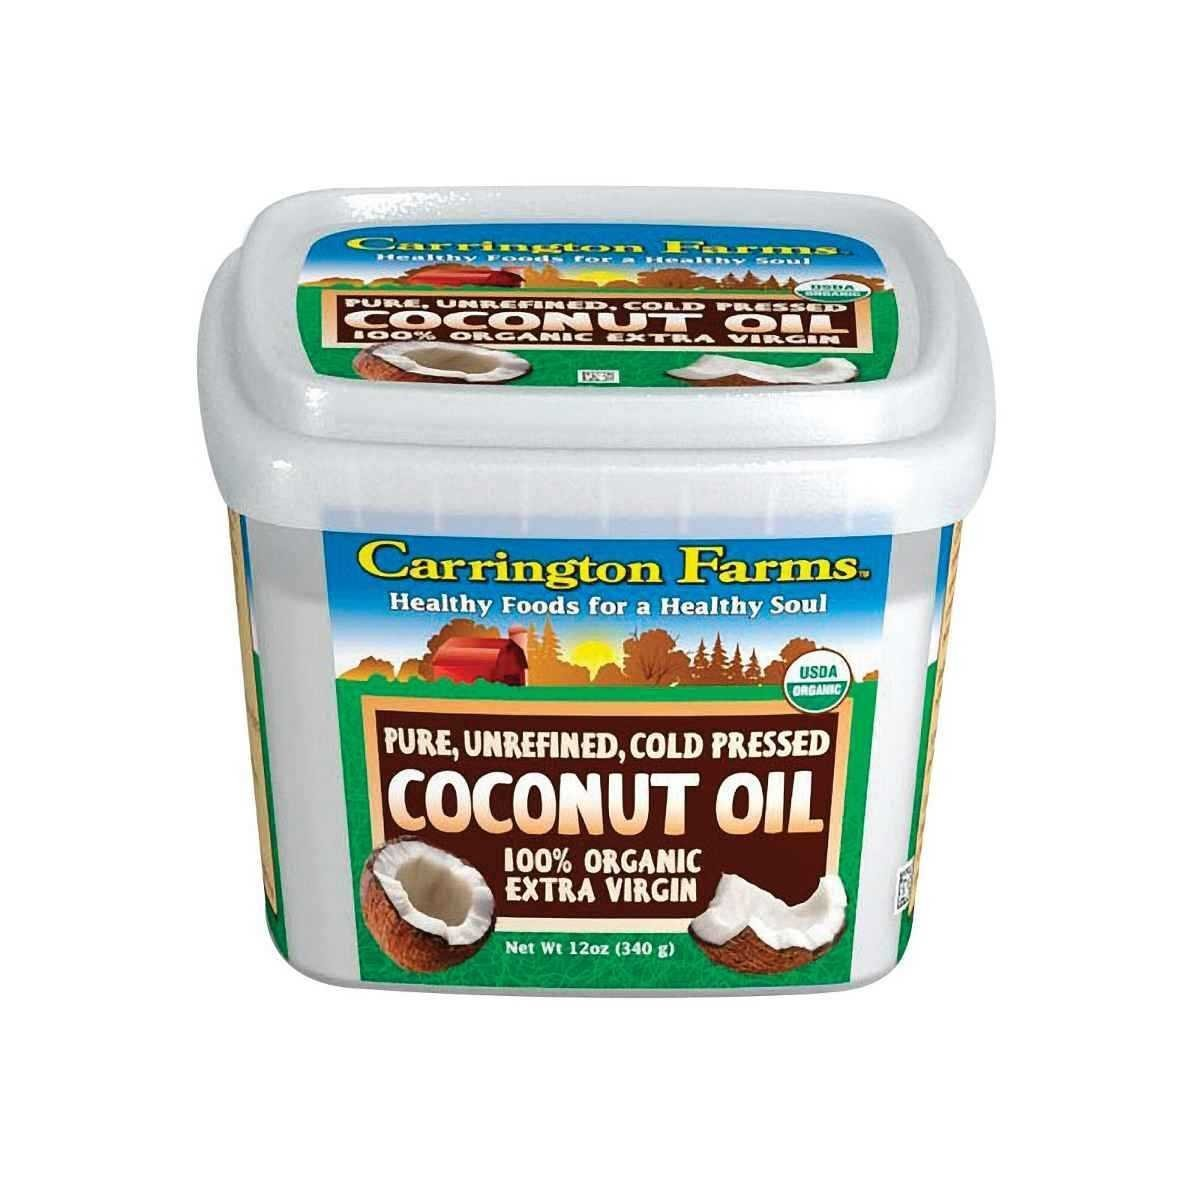 Carrington Farms Organic Extra Virgin Coconut Oil, 12 Fluid Ounce Tub - 6 per case. by Carrington Farms